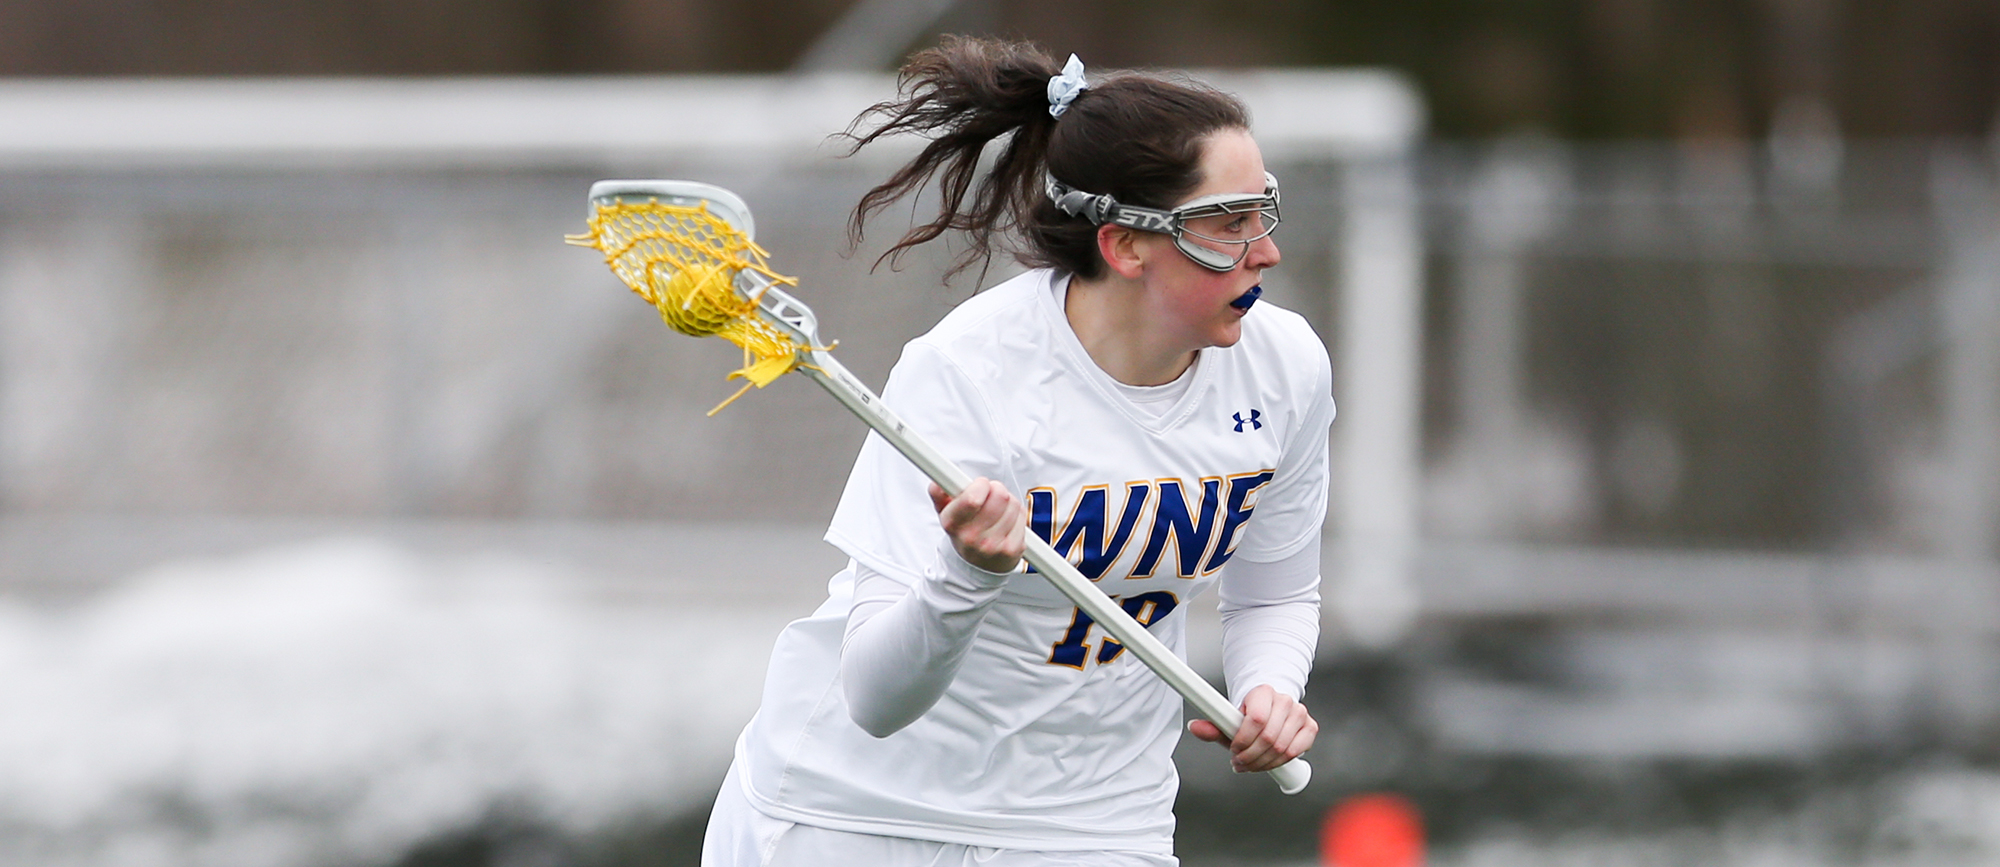 Kristen Breen recorded a season-high 7 points in Western New England's 16-6 win over Gordon on Wednesday. (Photo by Chris Marion)